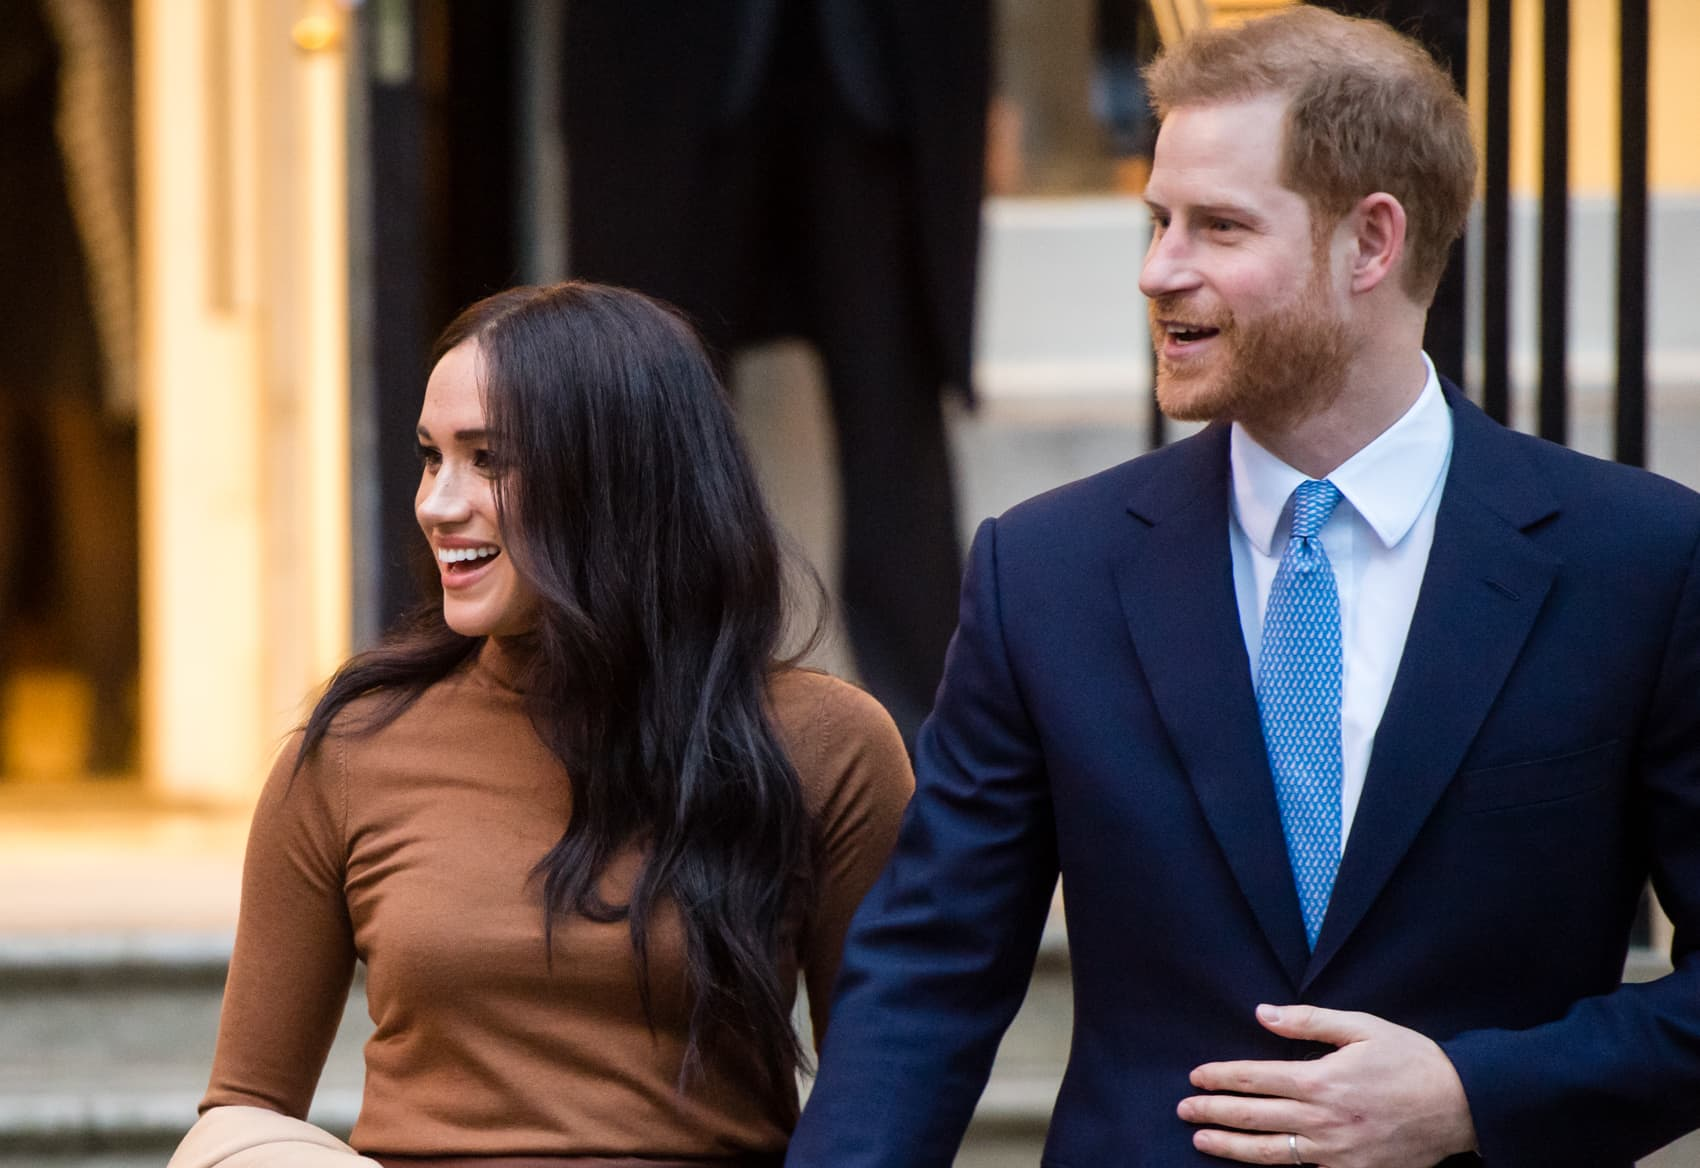 Meghan and Harry can flee to Canada but they will still owe taxes in the US